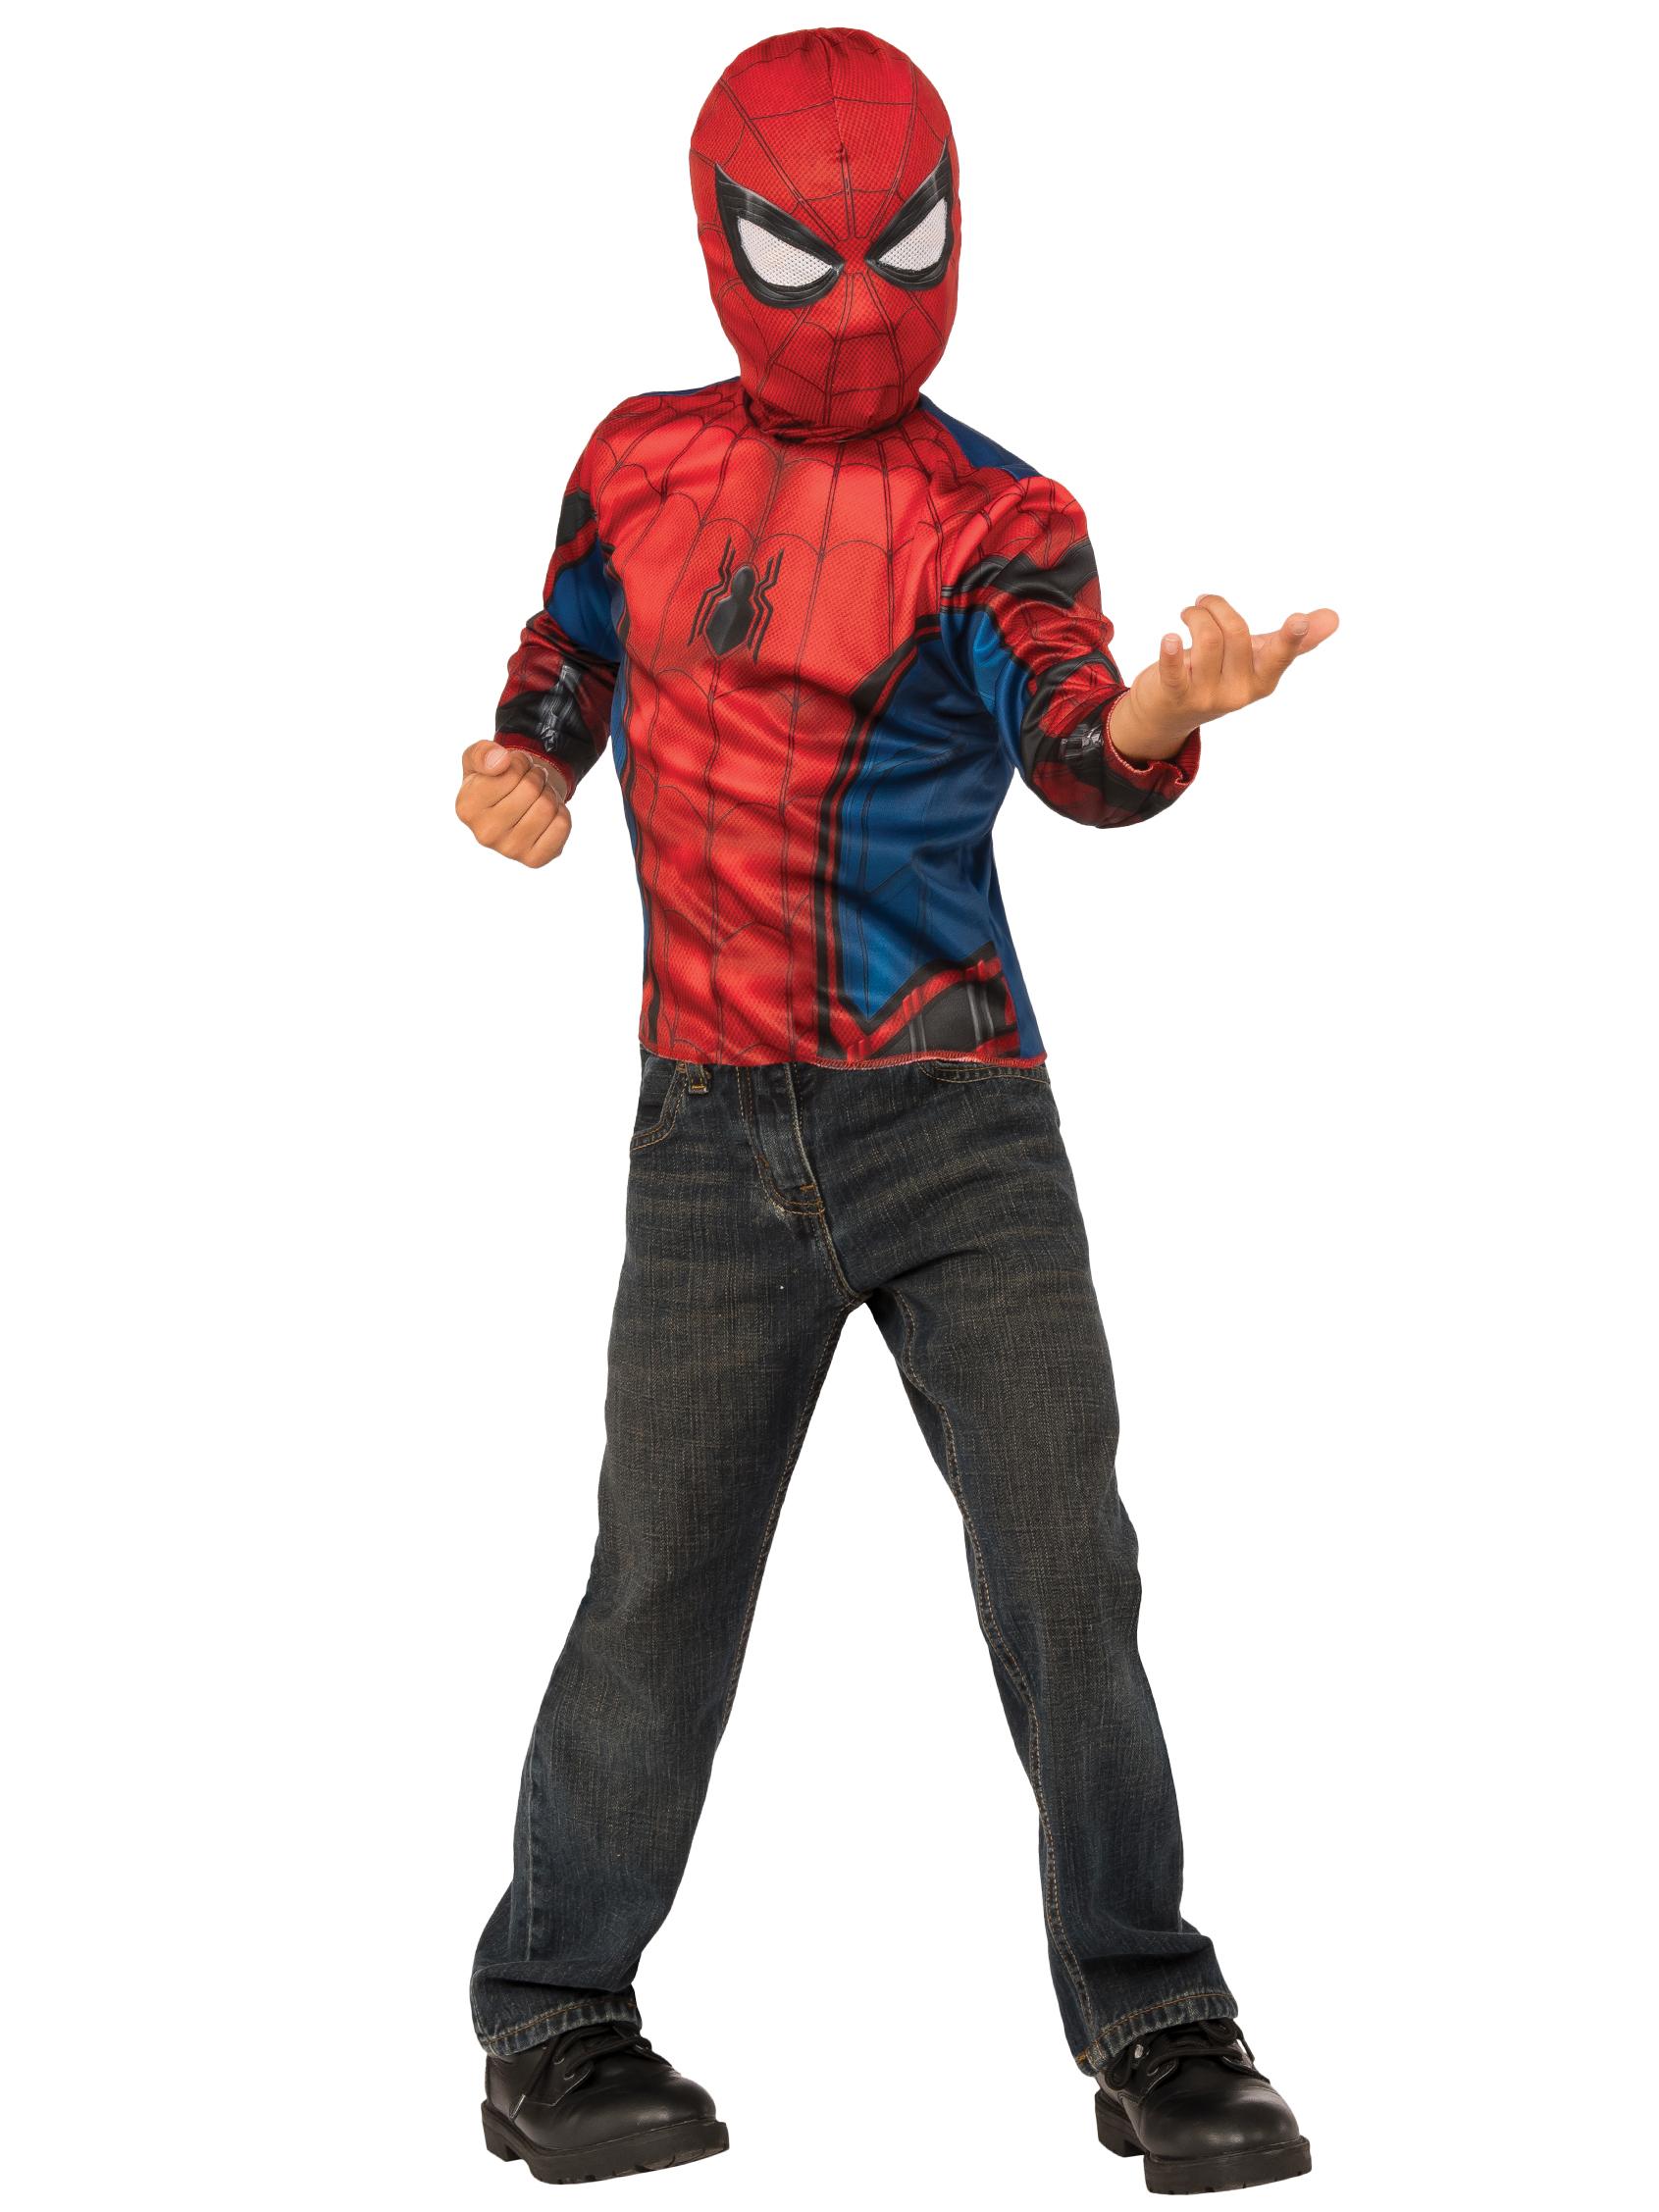 Spider-Man Homecoming 2-In-1 Boys Reversible Spider-Man Costume Top Set With Web Backpack G31934IBR-S